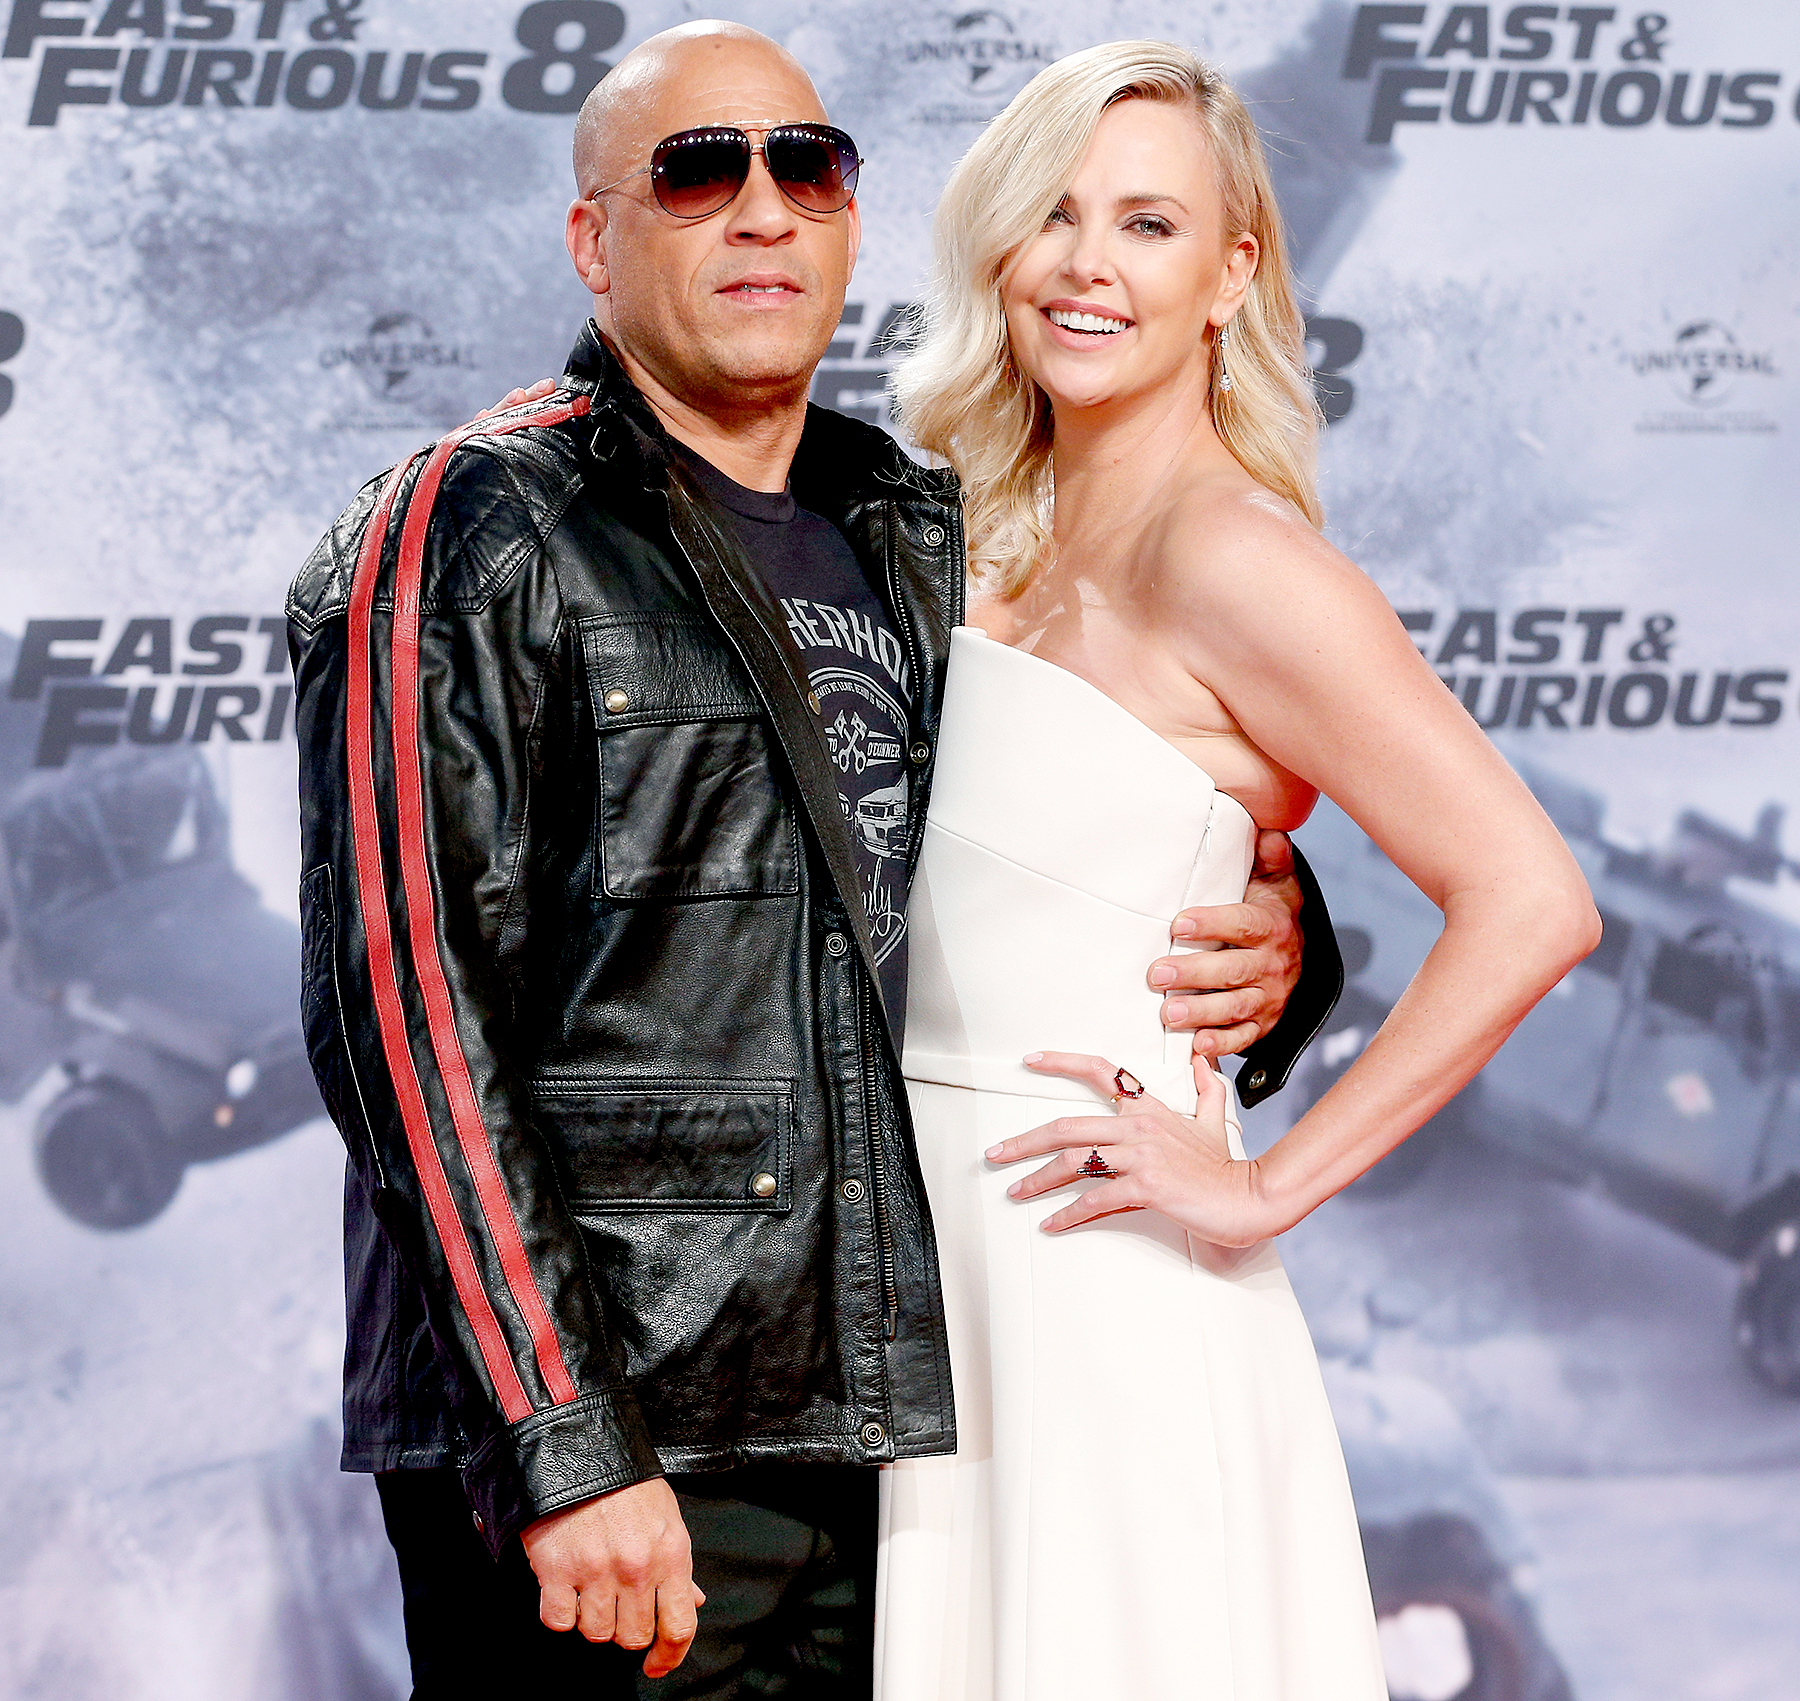 Vin Diesel and Charlize Theron attend the Fast & Furious 8 Berlin Premiere at Sony Centre on April 4, 2017 in Berlin, Germany.